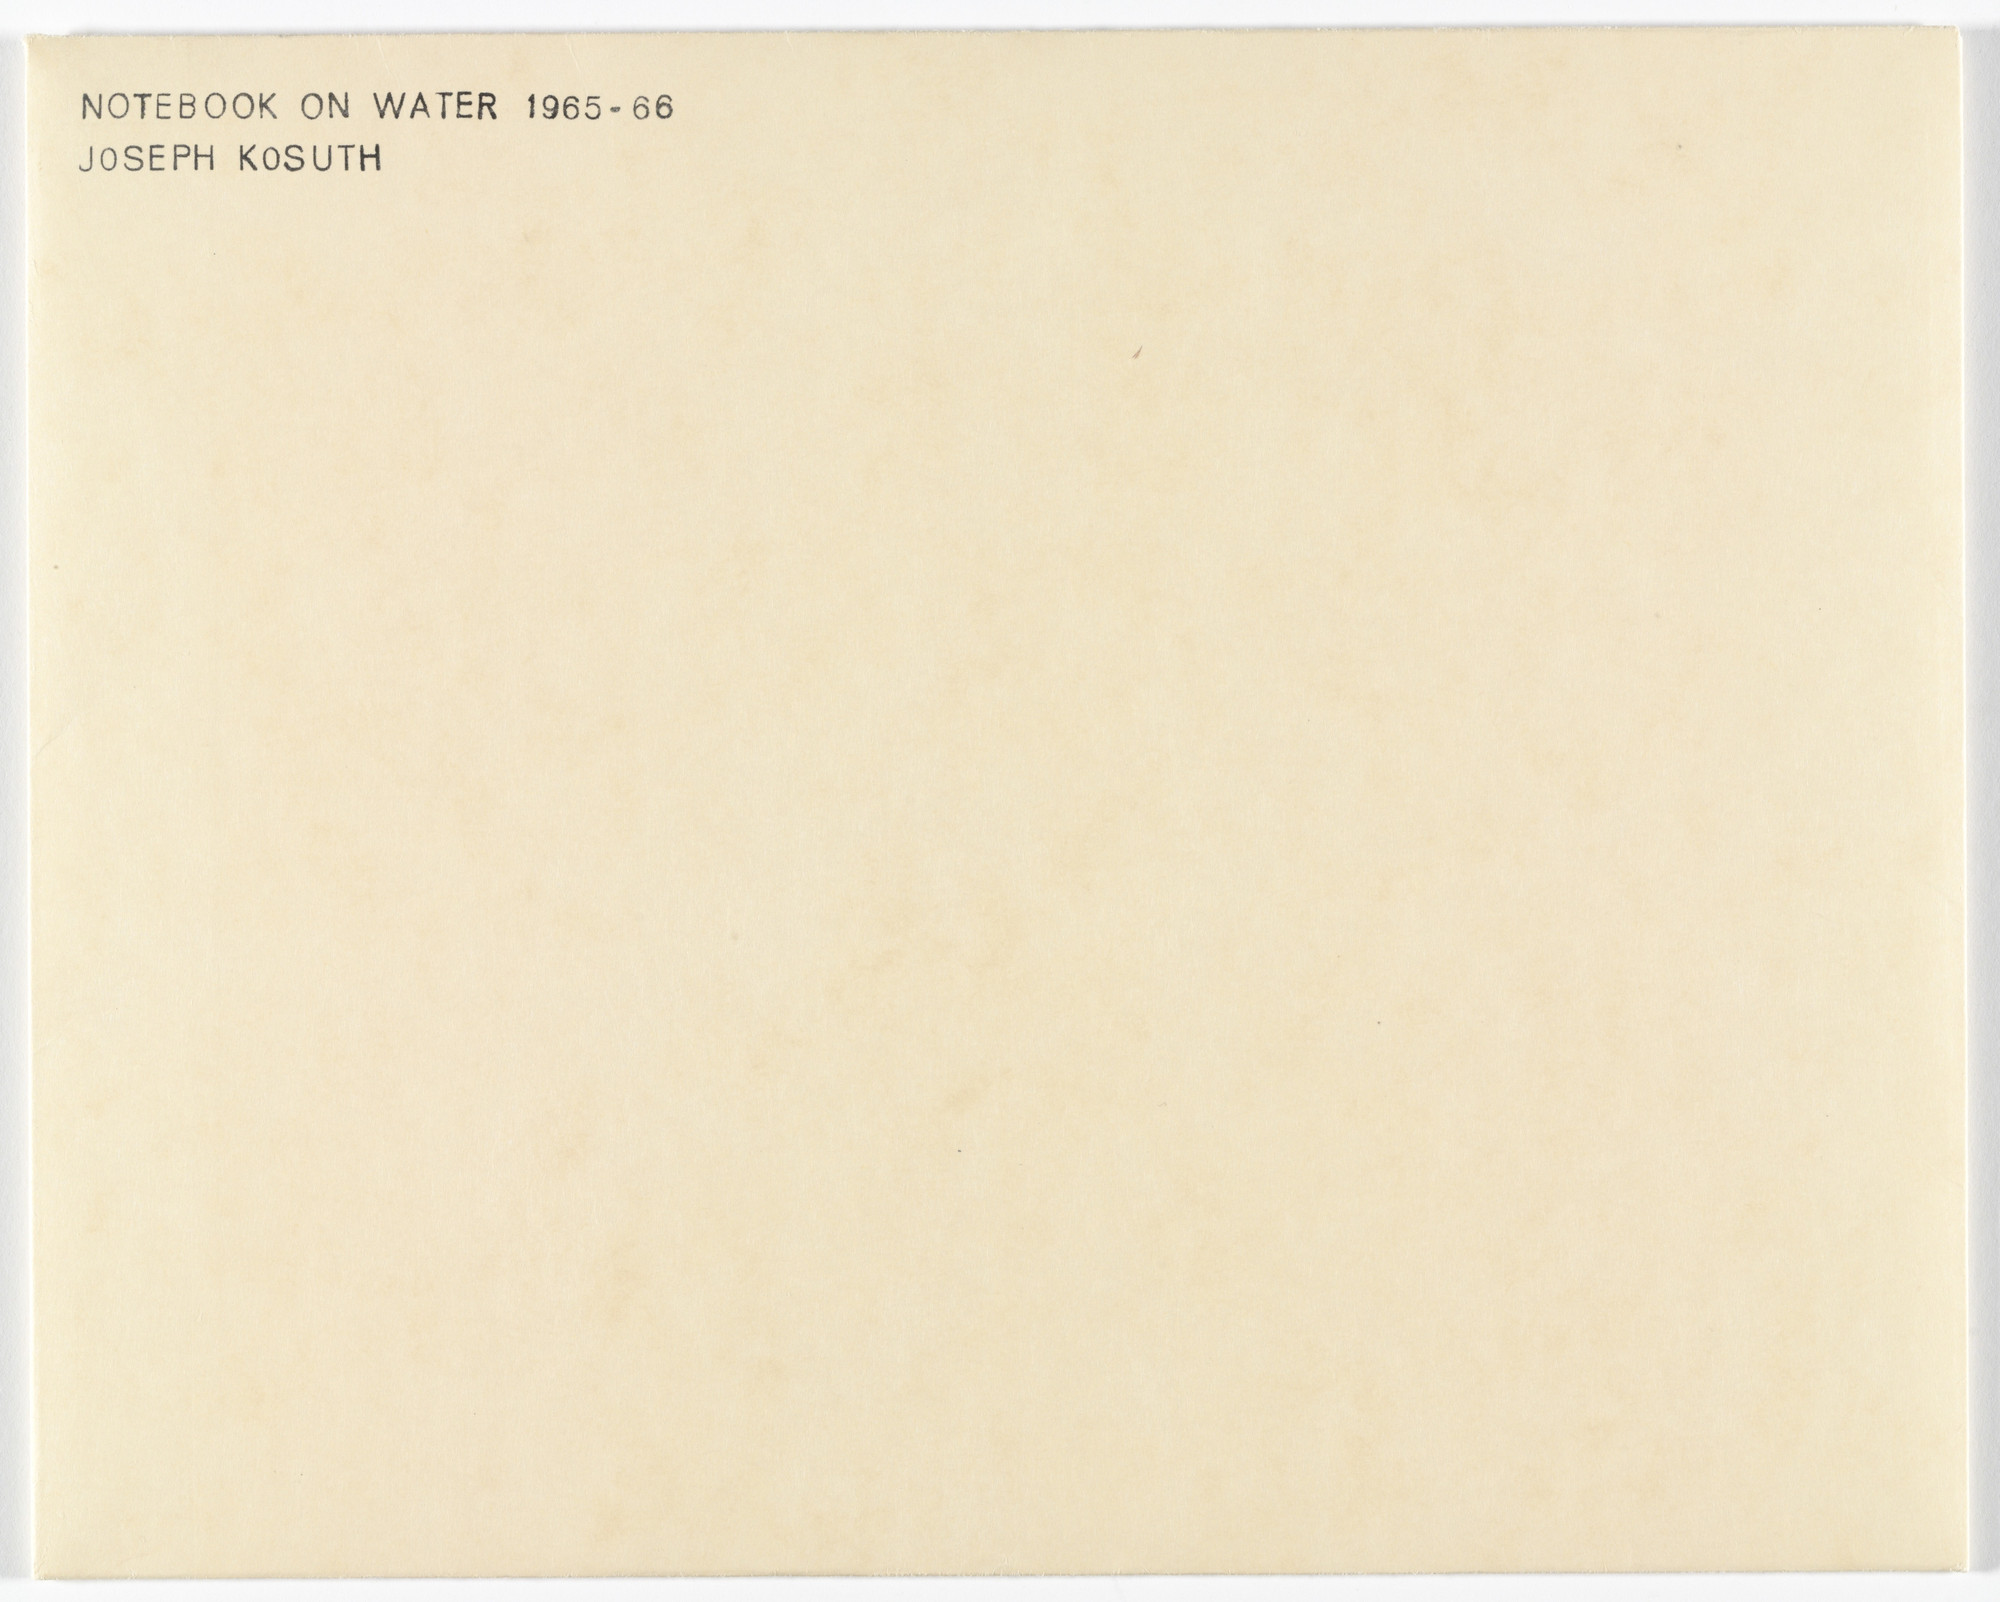 Joseph Kosuth. Notebook on Water from Artists & Photographs. 1965–66, published 1970